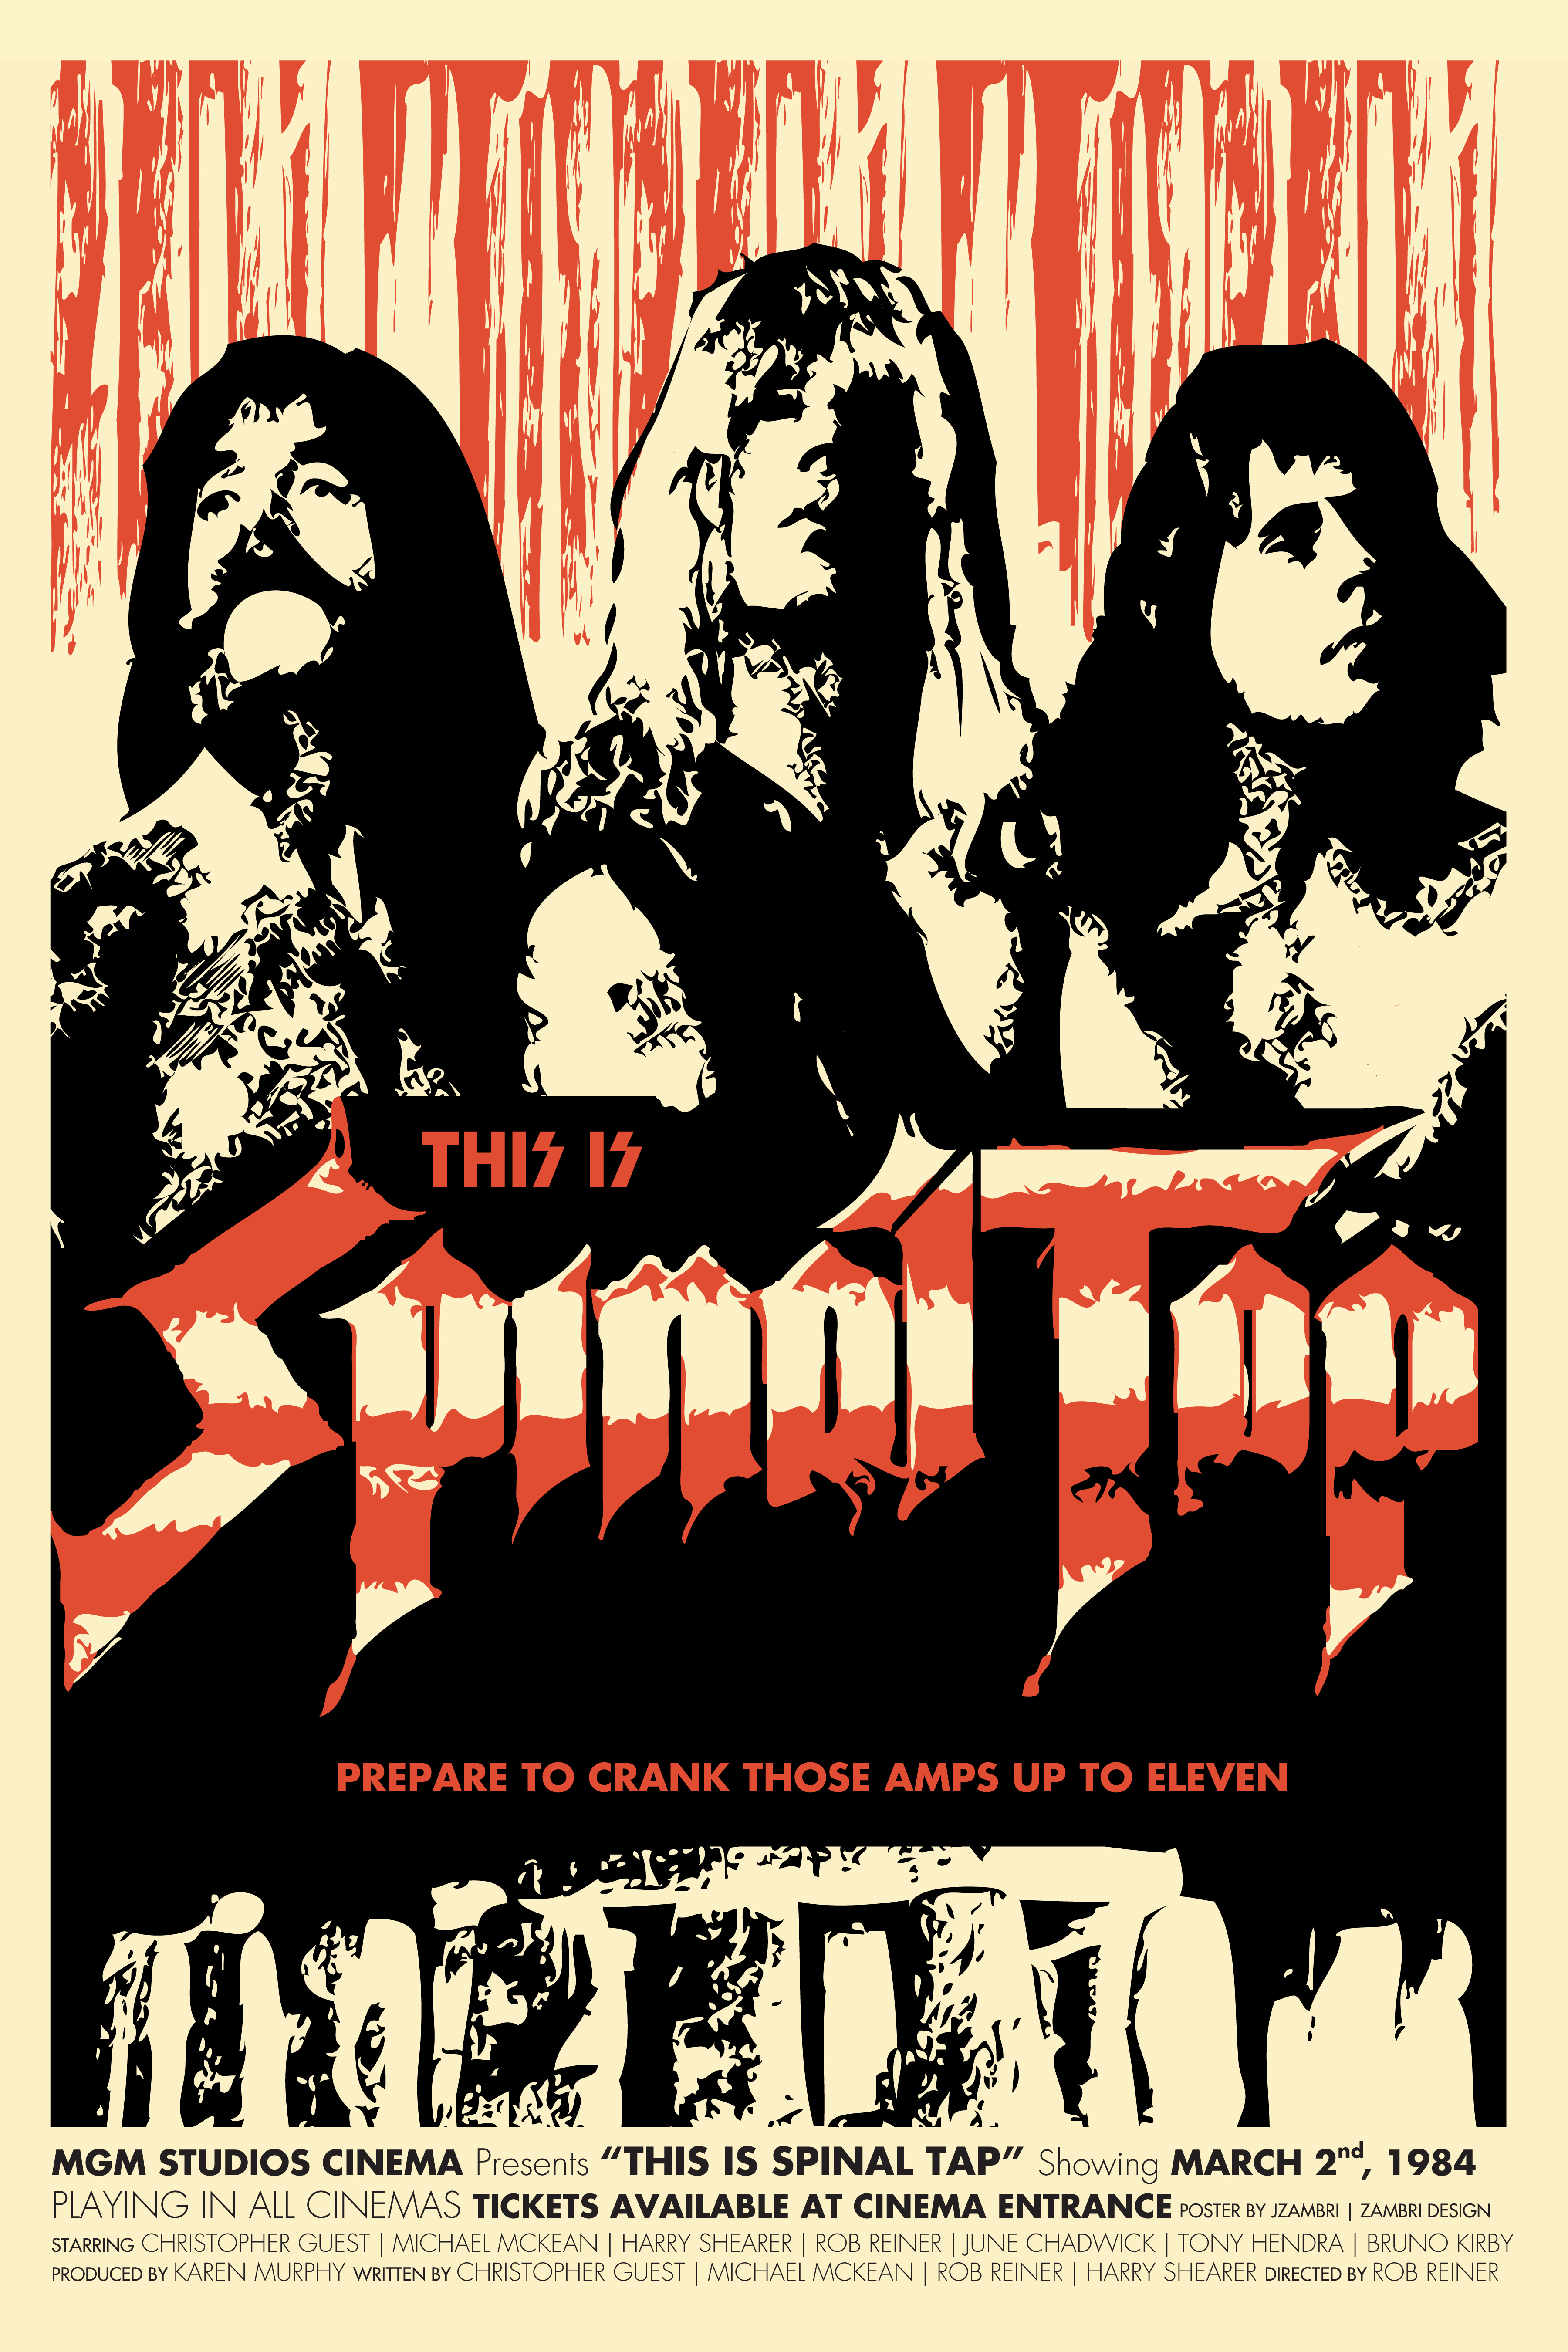 clinton street block party 2015 with this is spinal tap